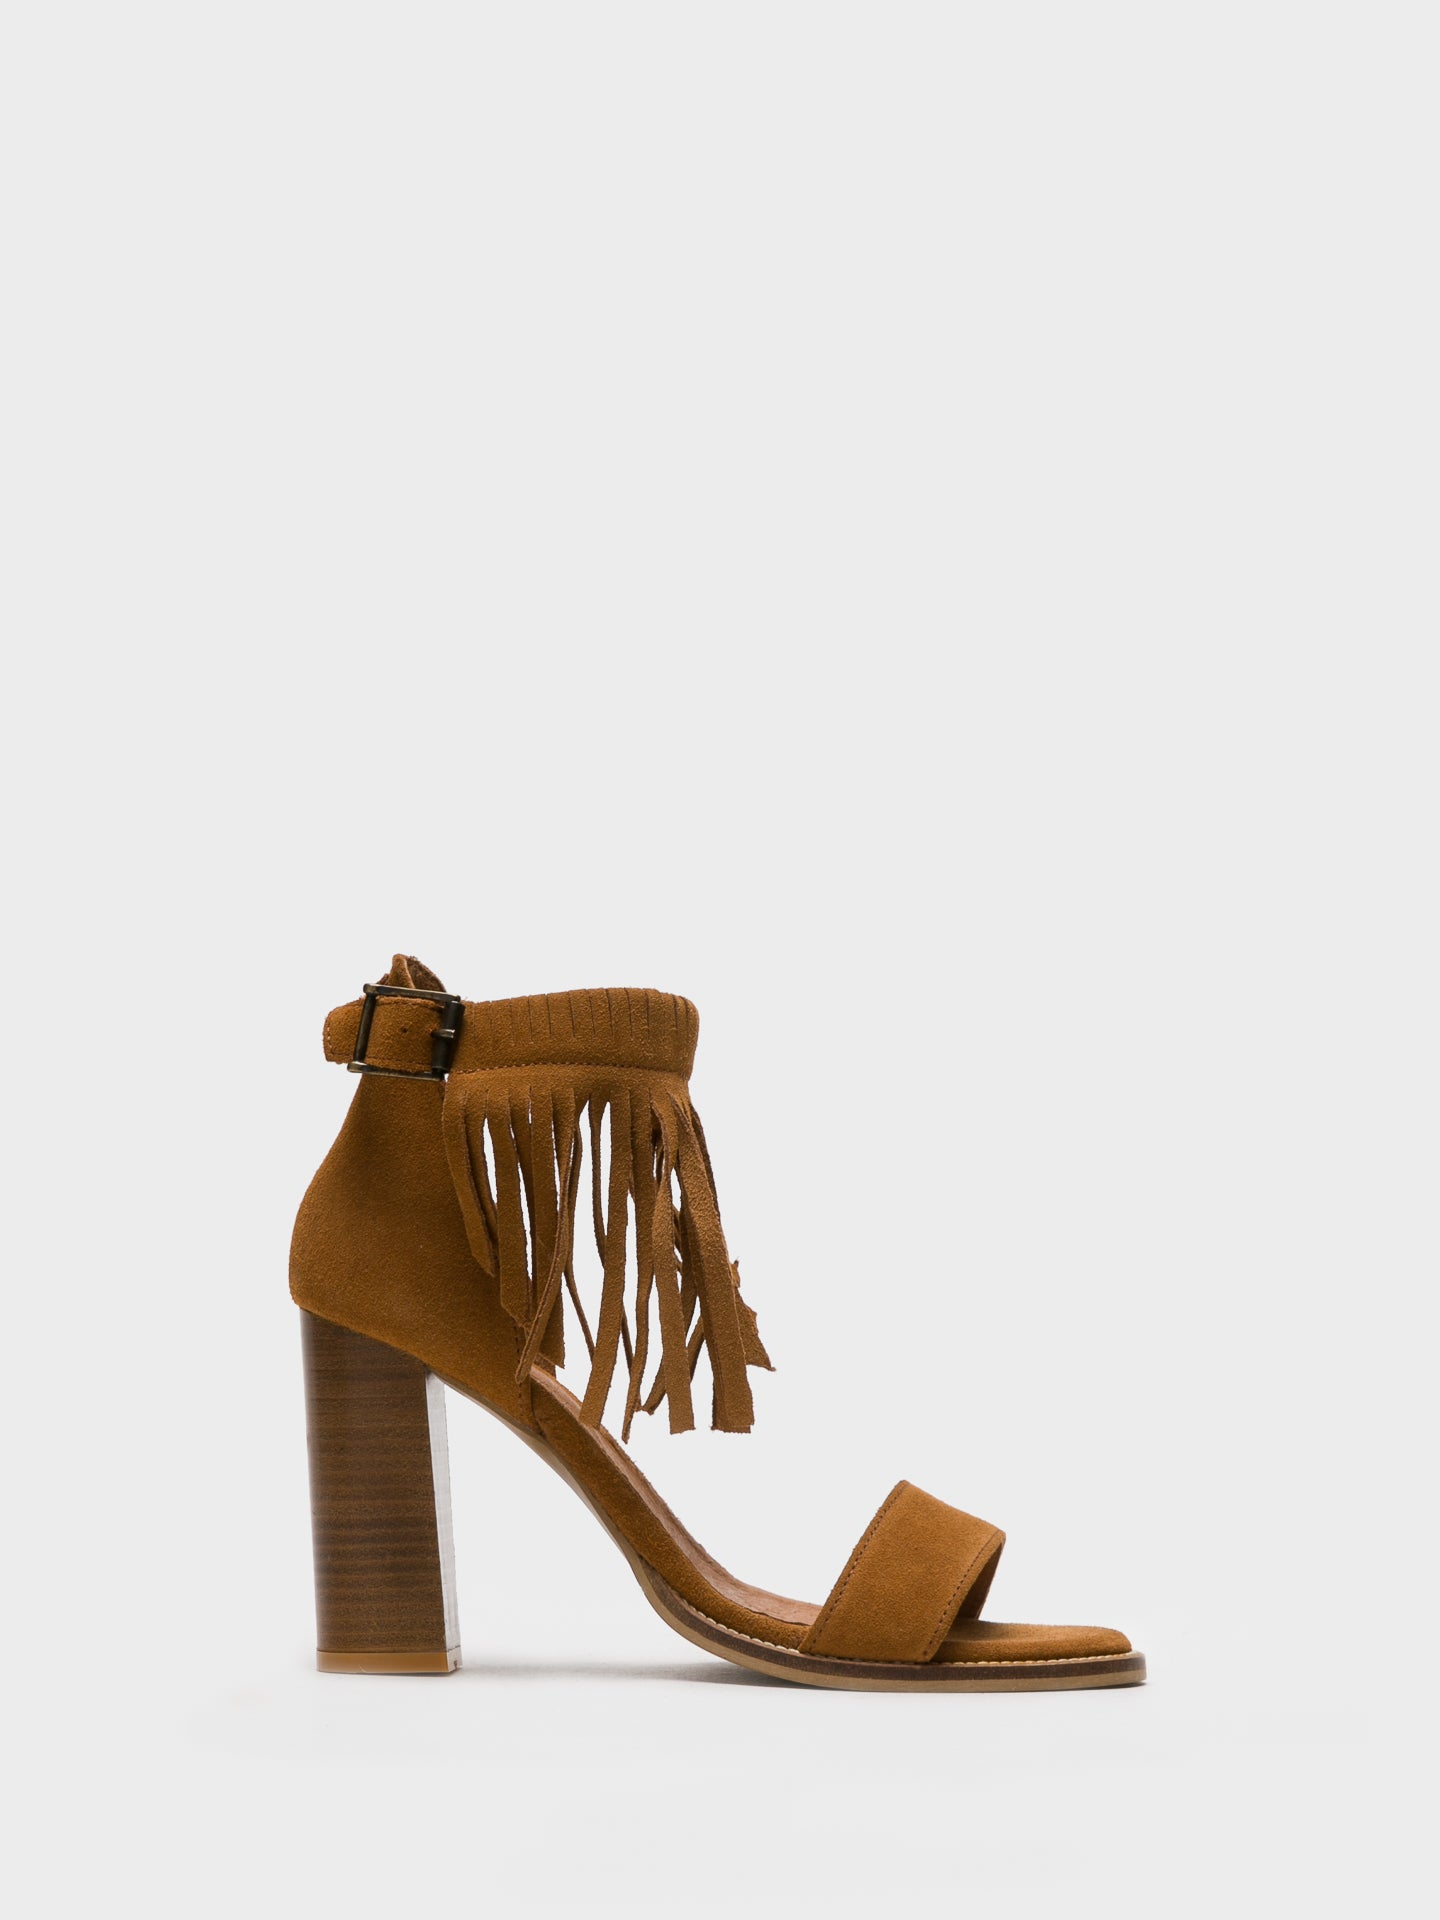 Foreva Beige Strappy Sandals